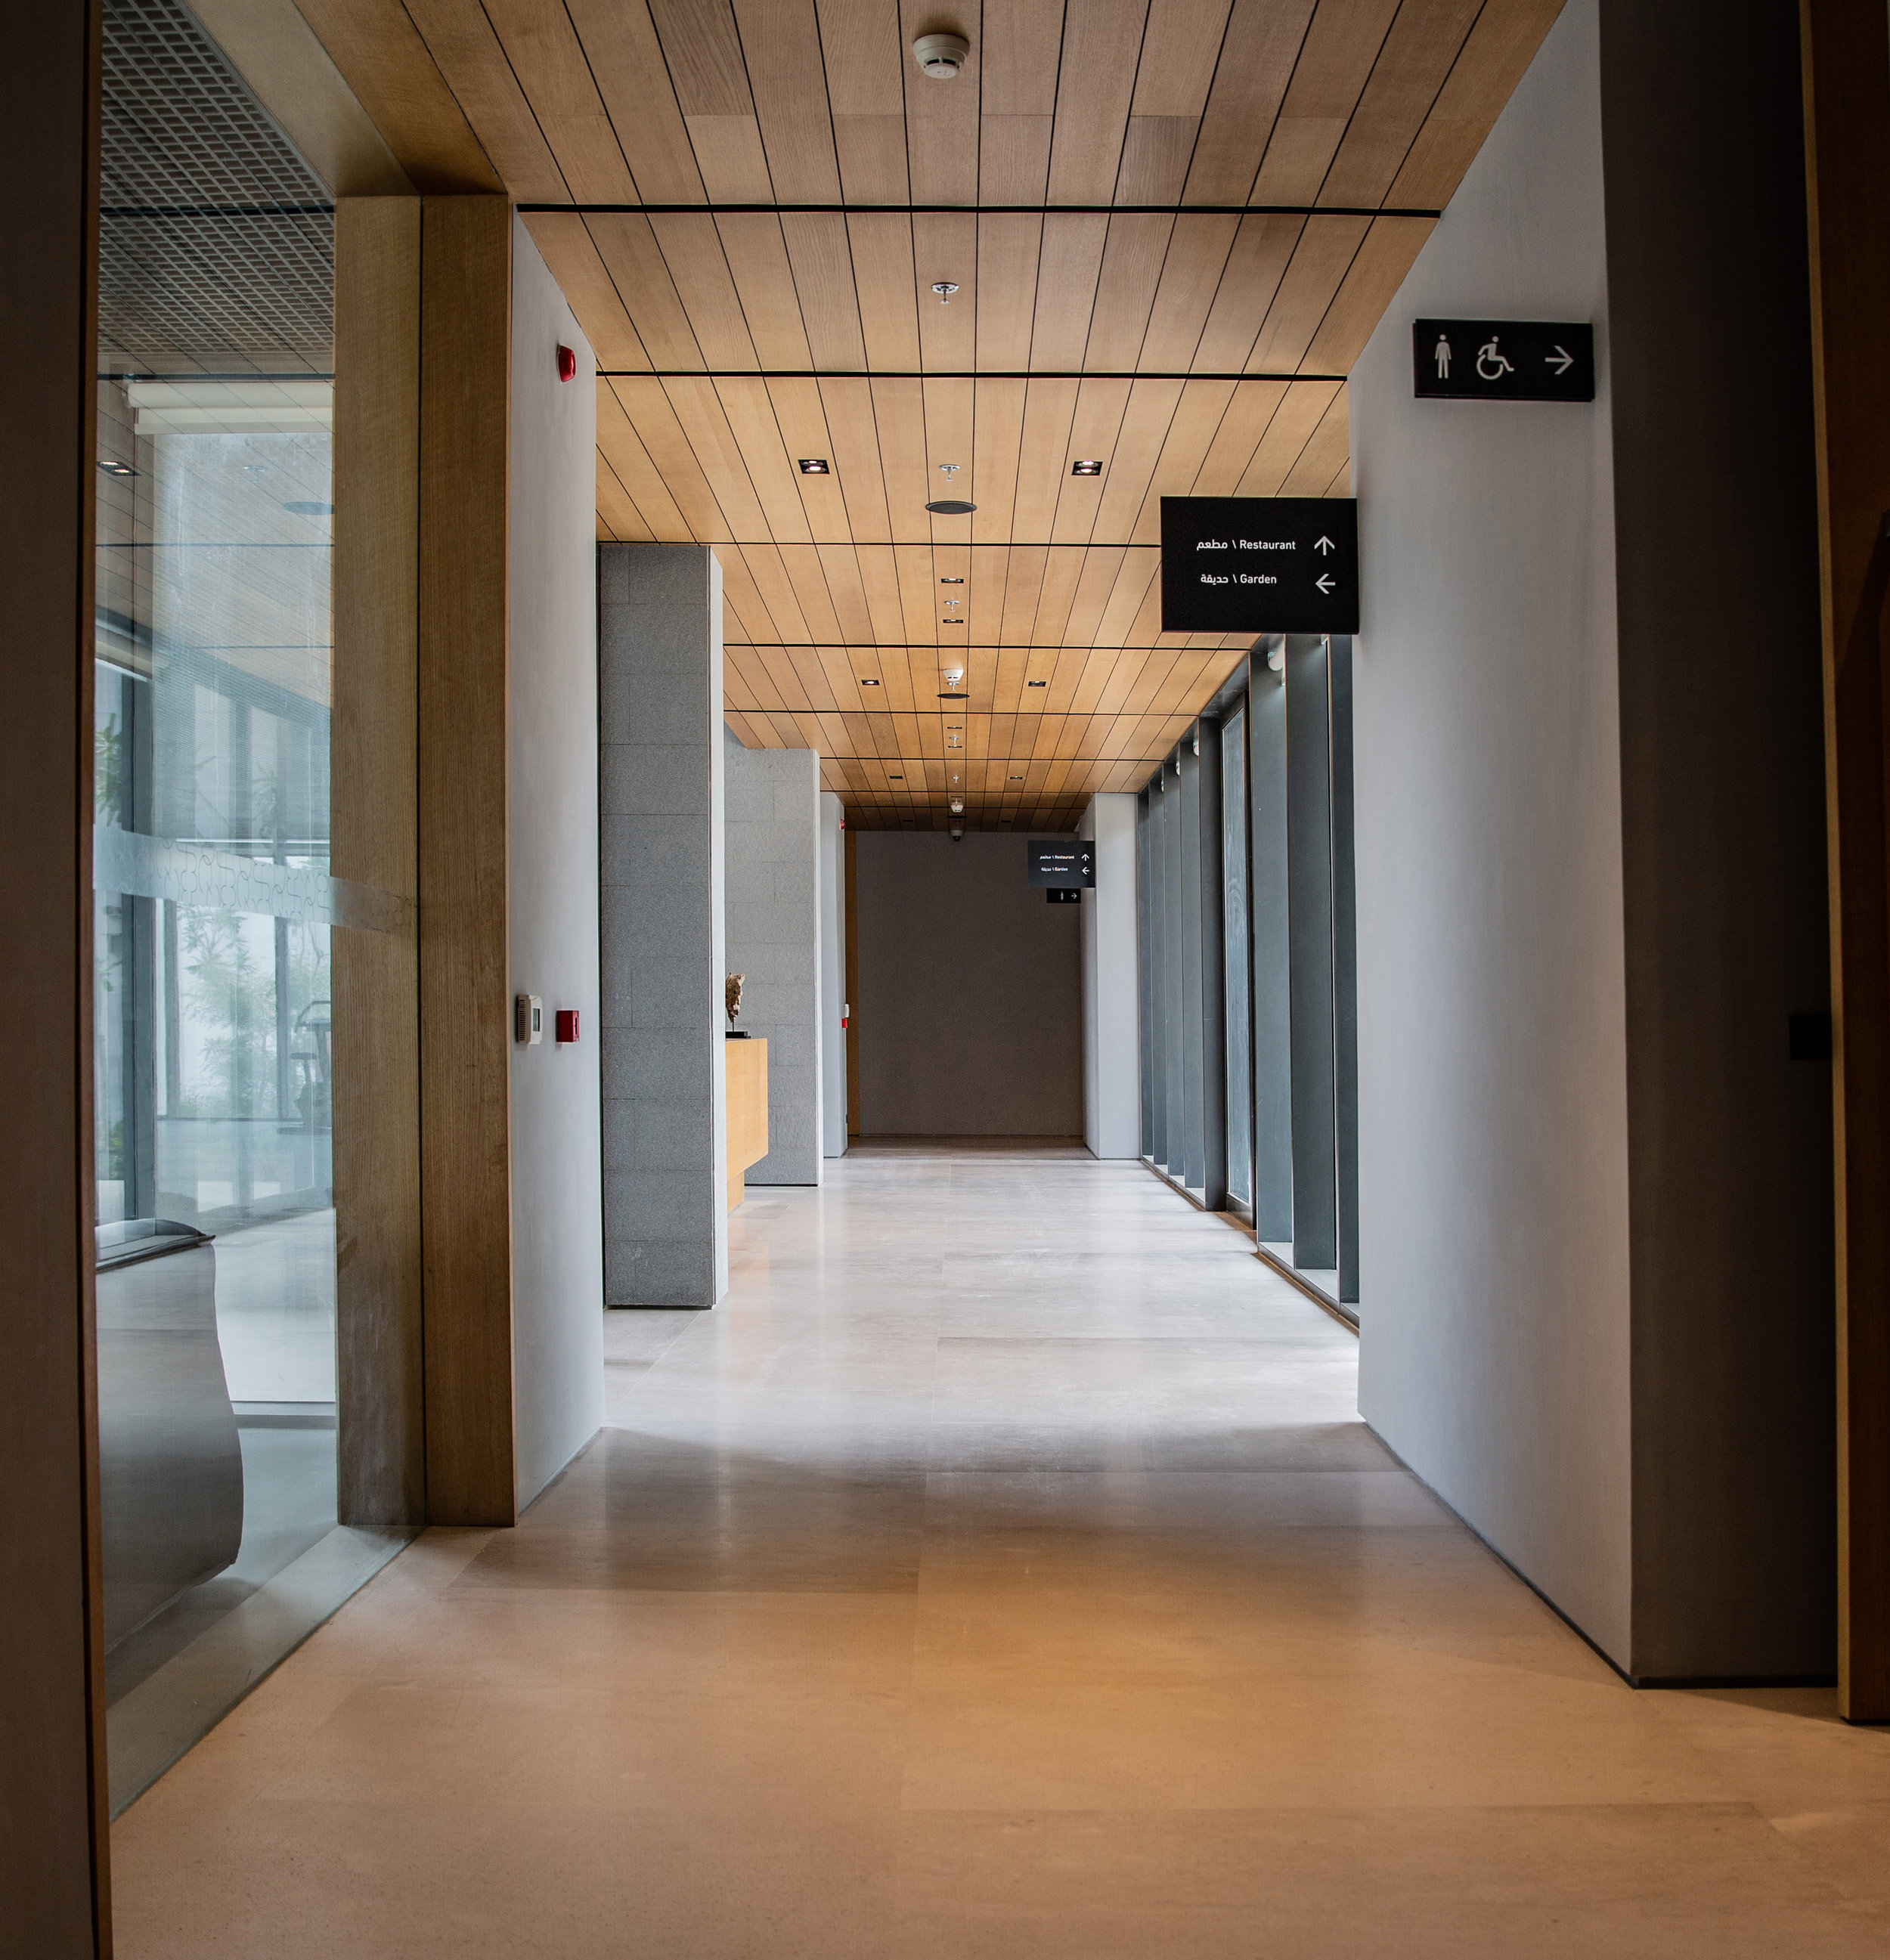 Interior signs mirror the austere rectangular forms of the architecture